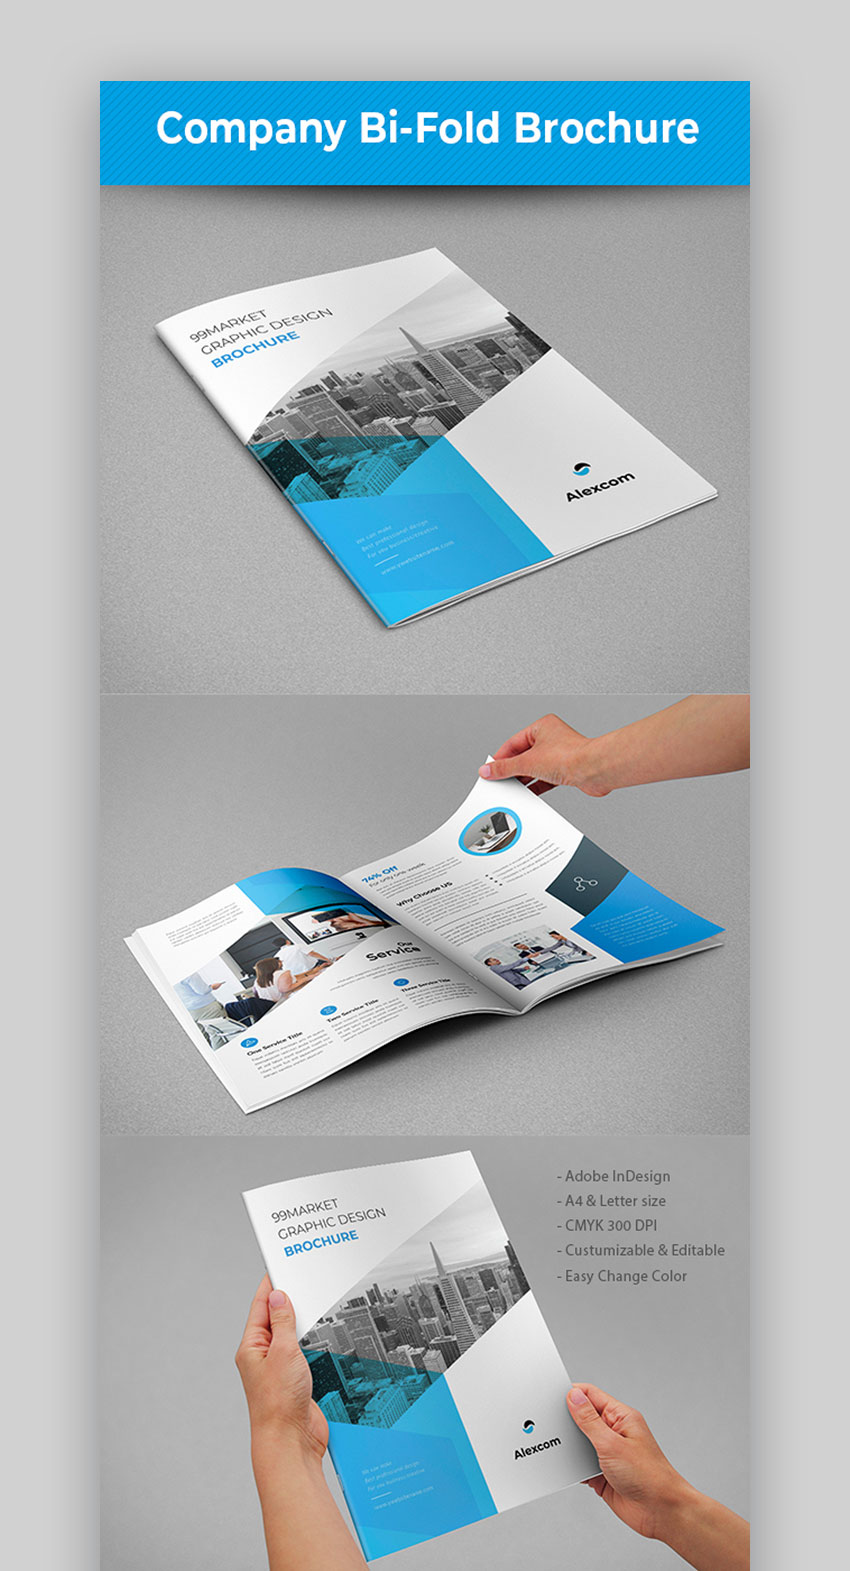 20 Best Business Proposal Templates Ideas For New Client Projects Color Circuit Board Electronic Template Large Cards Pack Of Company Bi Fold Brochure